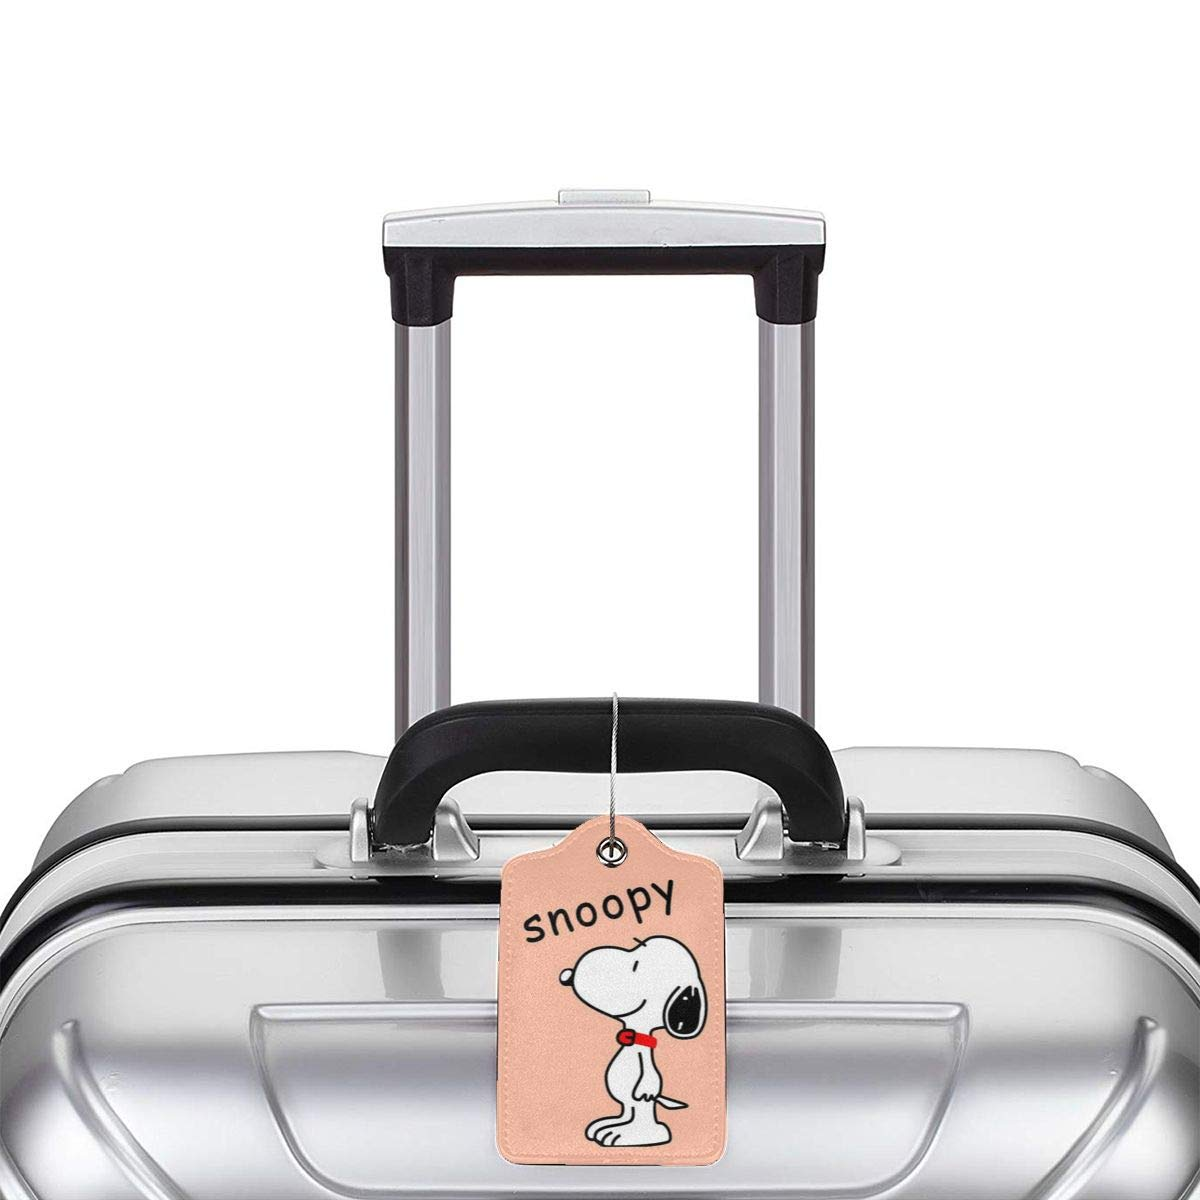 Fashion Snoopy And His Life Soft Leather Luggage Tags With Privacy Cover 1-4 Pcs Choose Suit For Travel,Vacation